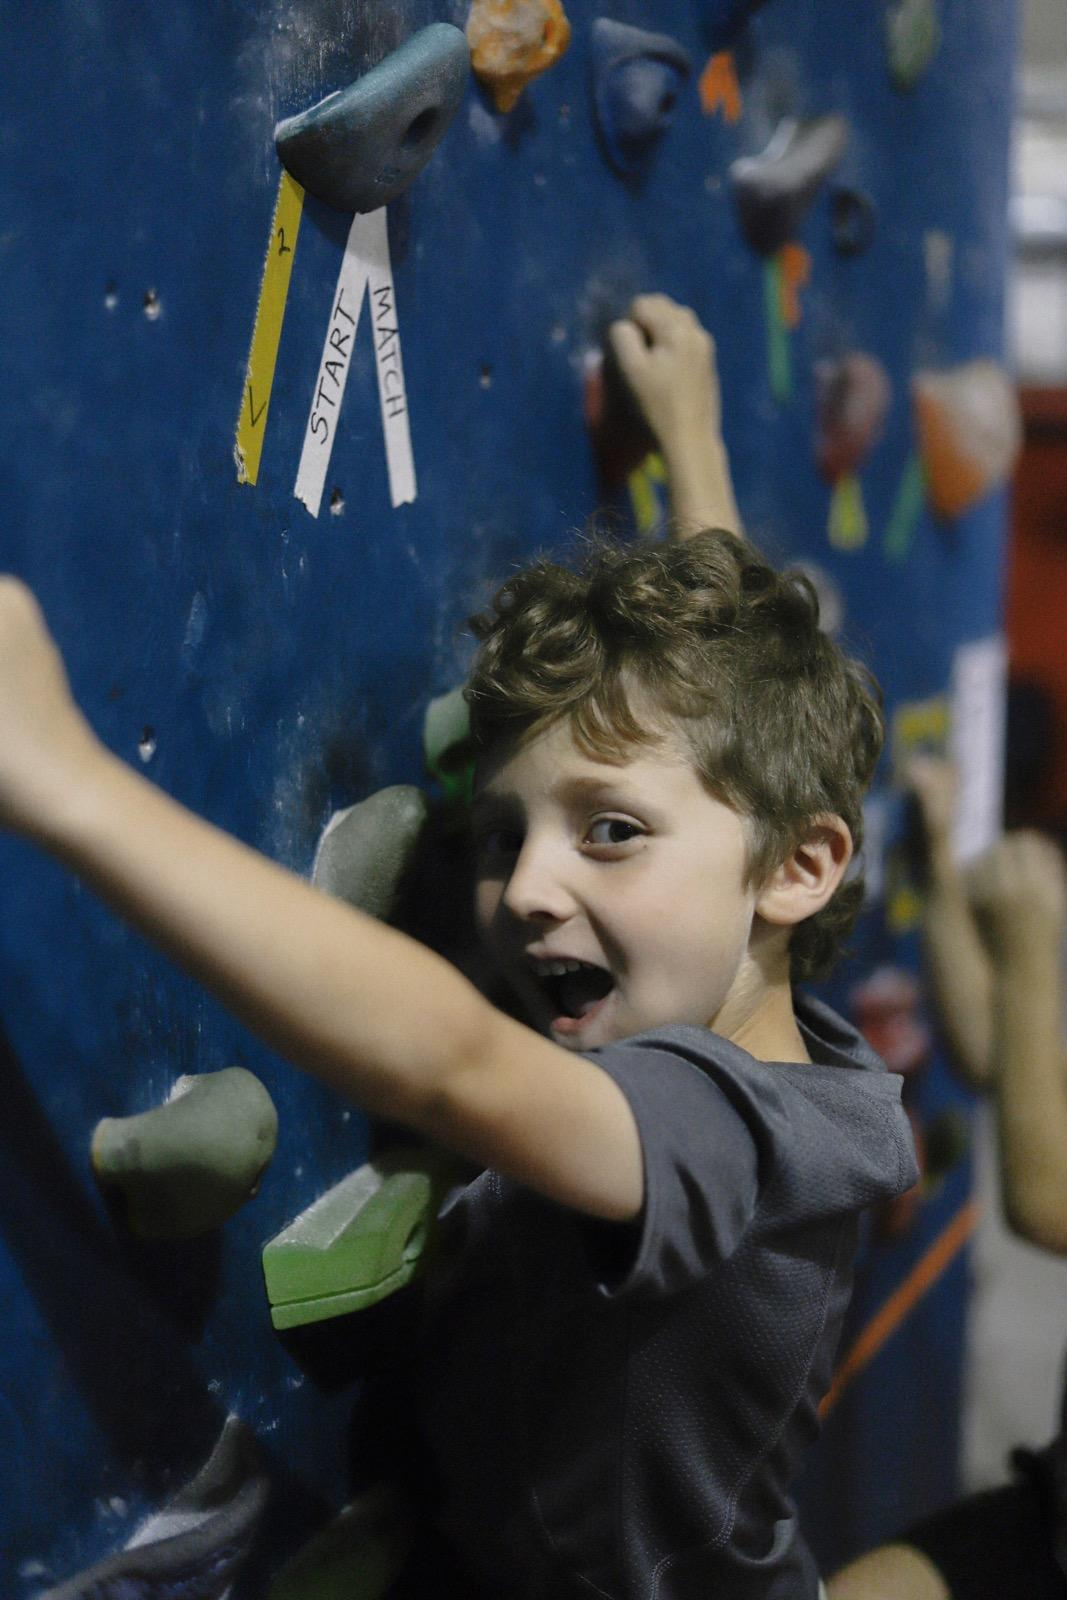 Summer Camp - We know the value of a smile at the end of the day. It's a small reminder of why we teach kids climbing.It's because learning to climb is fun, and because it encourages learning general life skills that can be applied every day.Our climbing camp doesn't set out to make kids all-star rock climbers but rather, through climbing, helps kids find ways to…